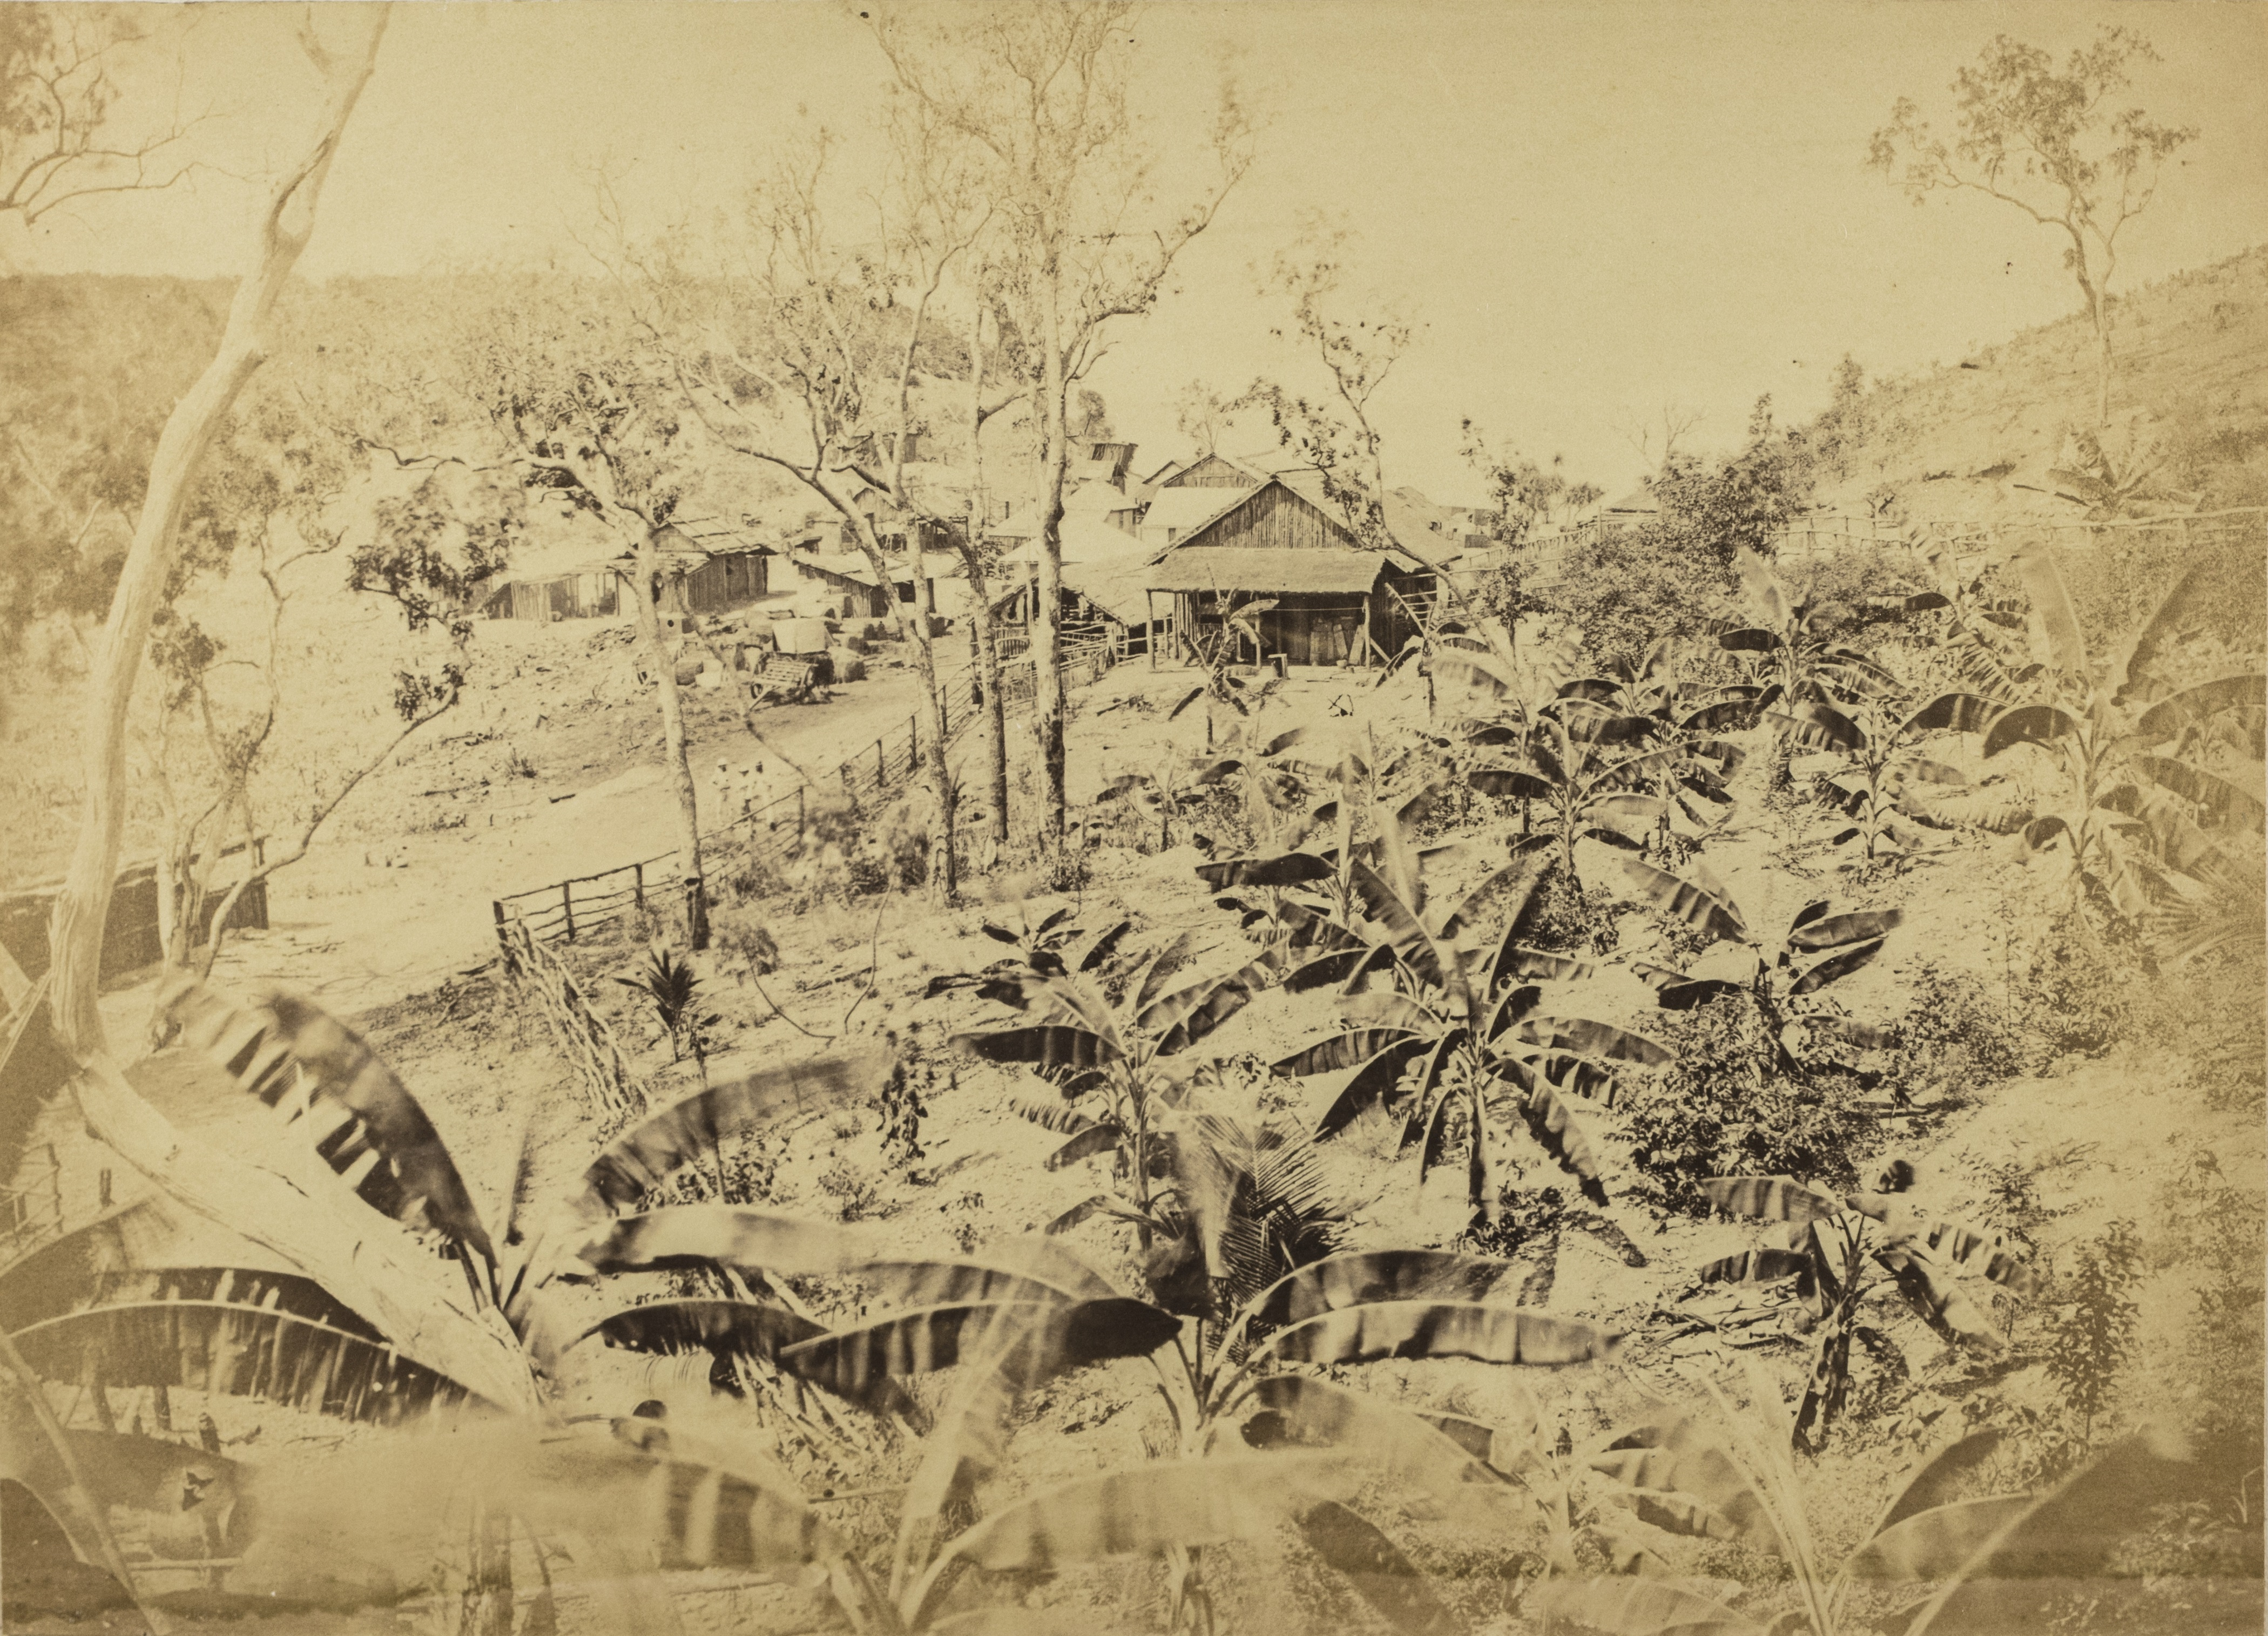 Banana garden beside road leading down to main survey camp at the base of Fort Hill, 1869